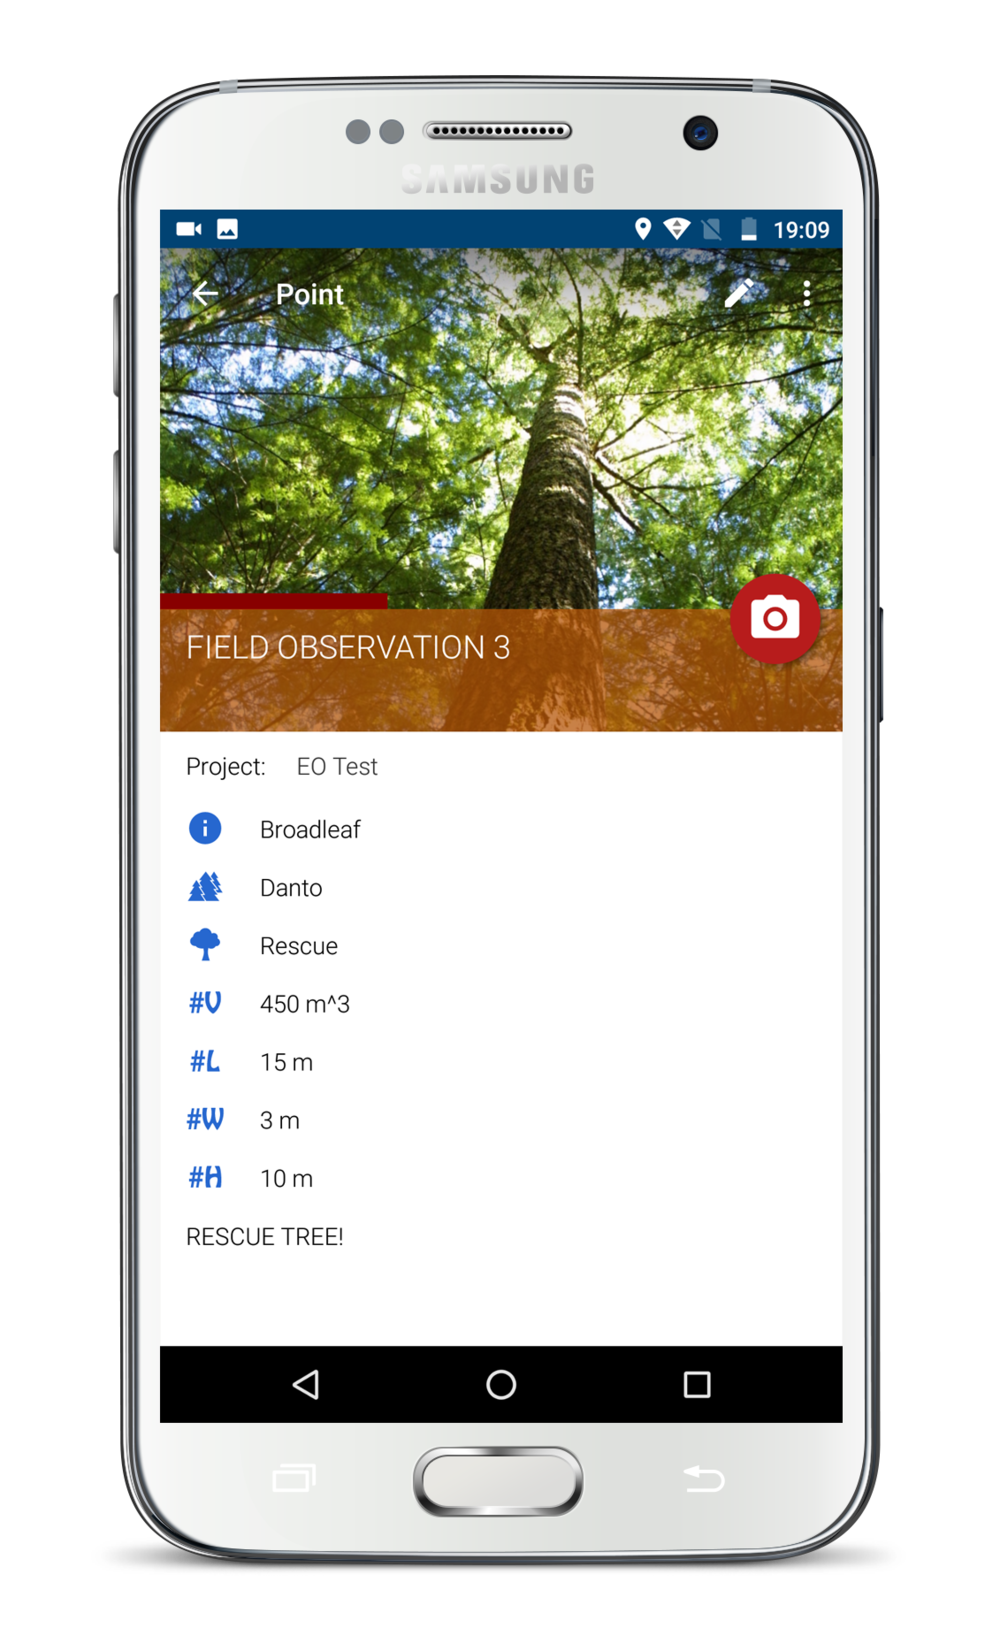 Improved Inventory - ►Registration of individual assets► Collect detailed information for each tree► Identity, time, date, location, photos► Tree species, quantity, volume► Building trust and accountability around the individual